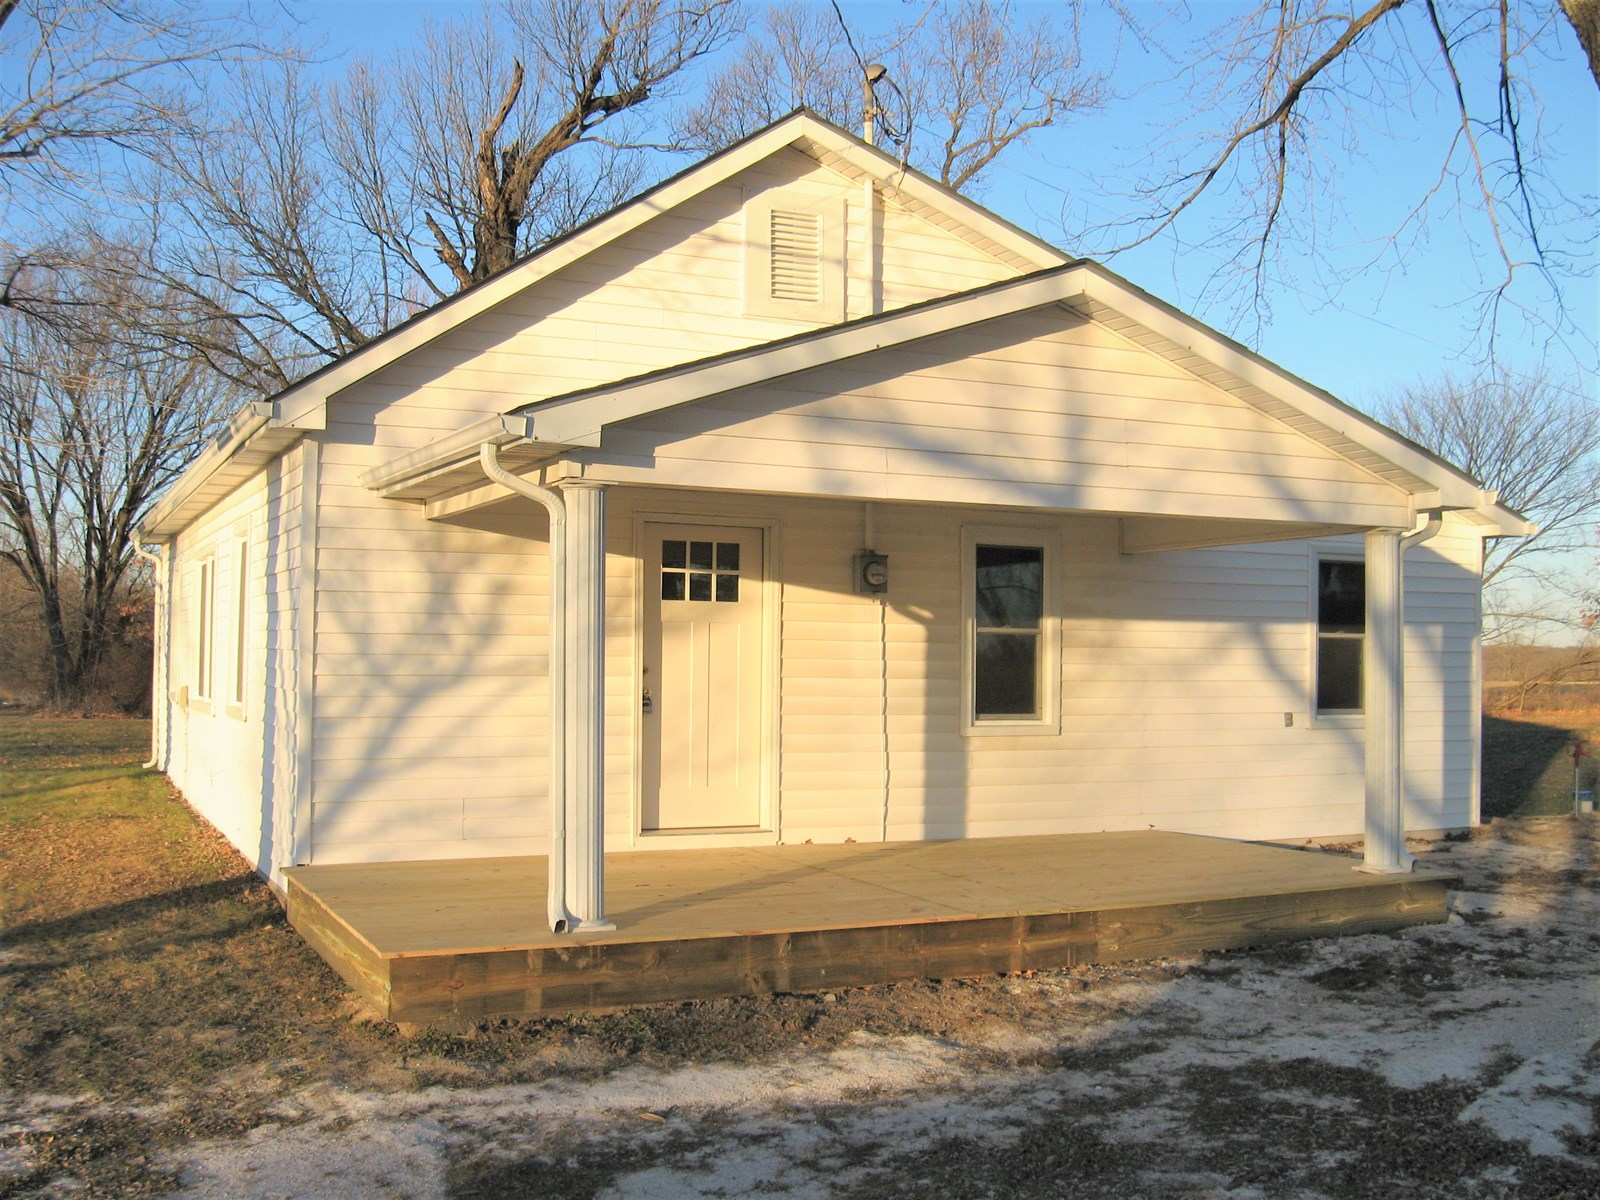 REMODELED COUNTRY HOME IN MARIES COUNTY BELLE MISSOURI